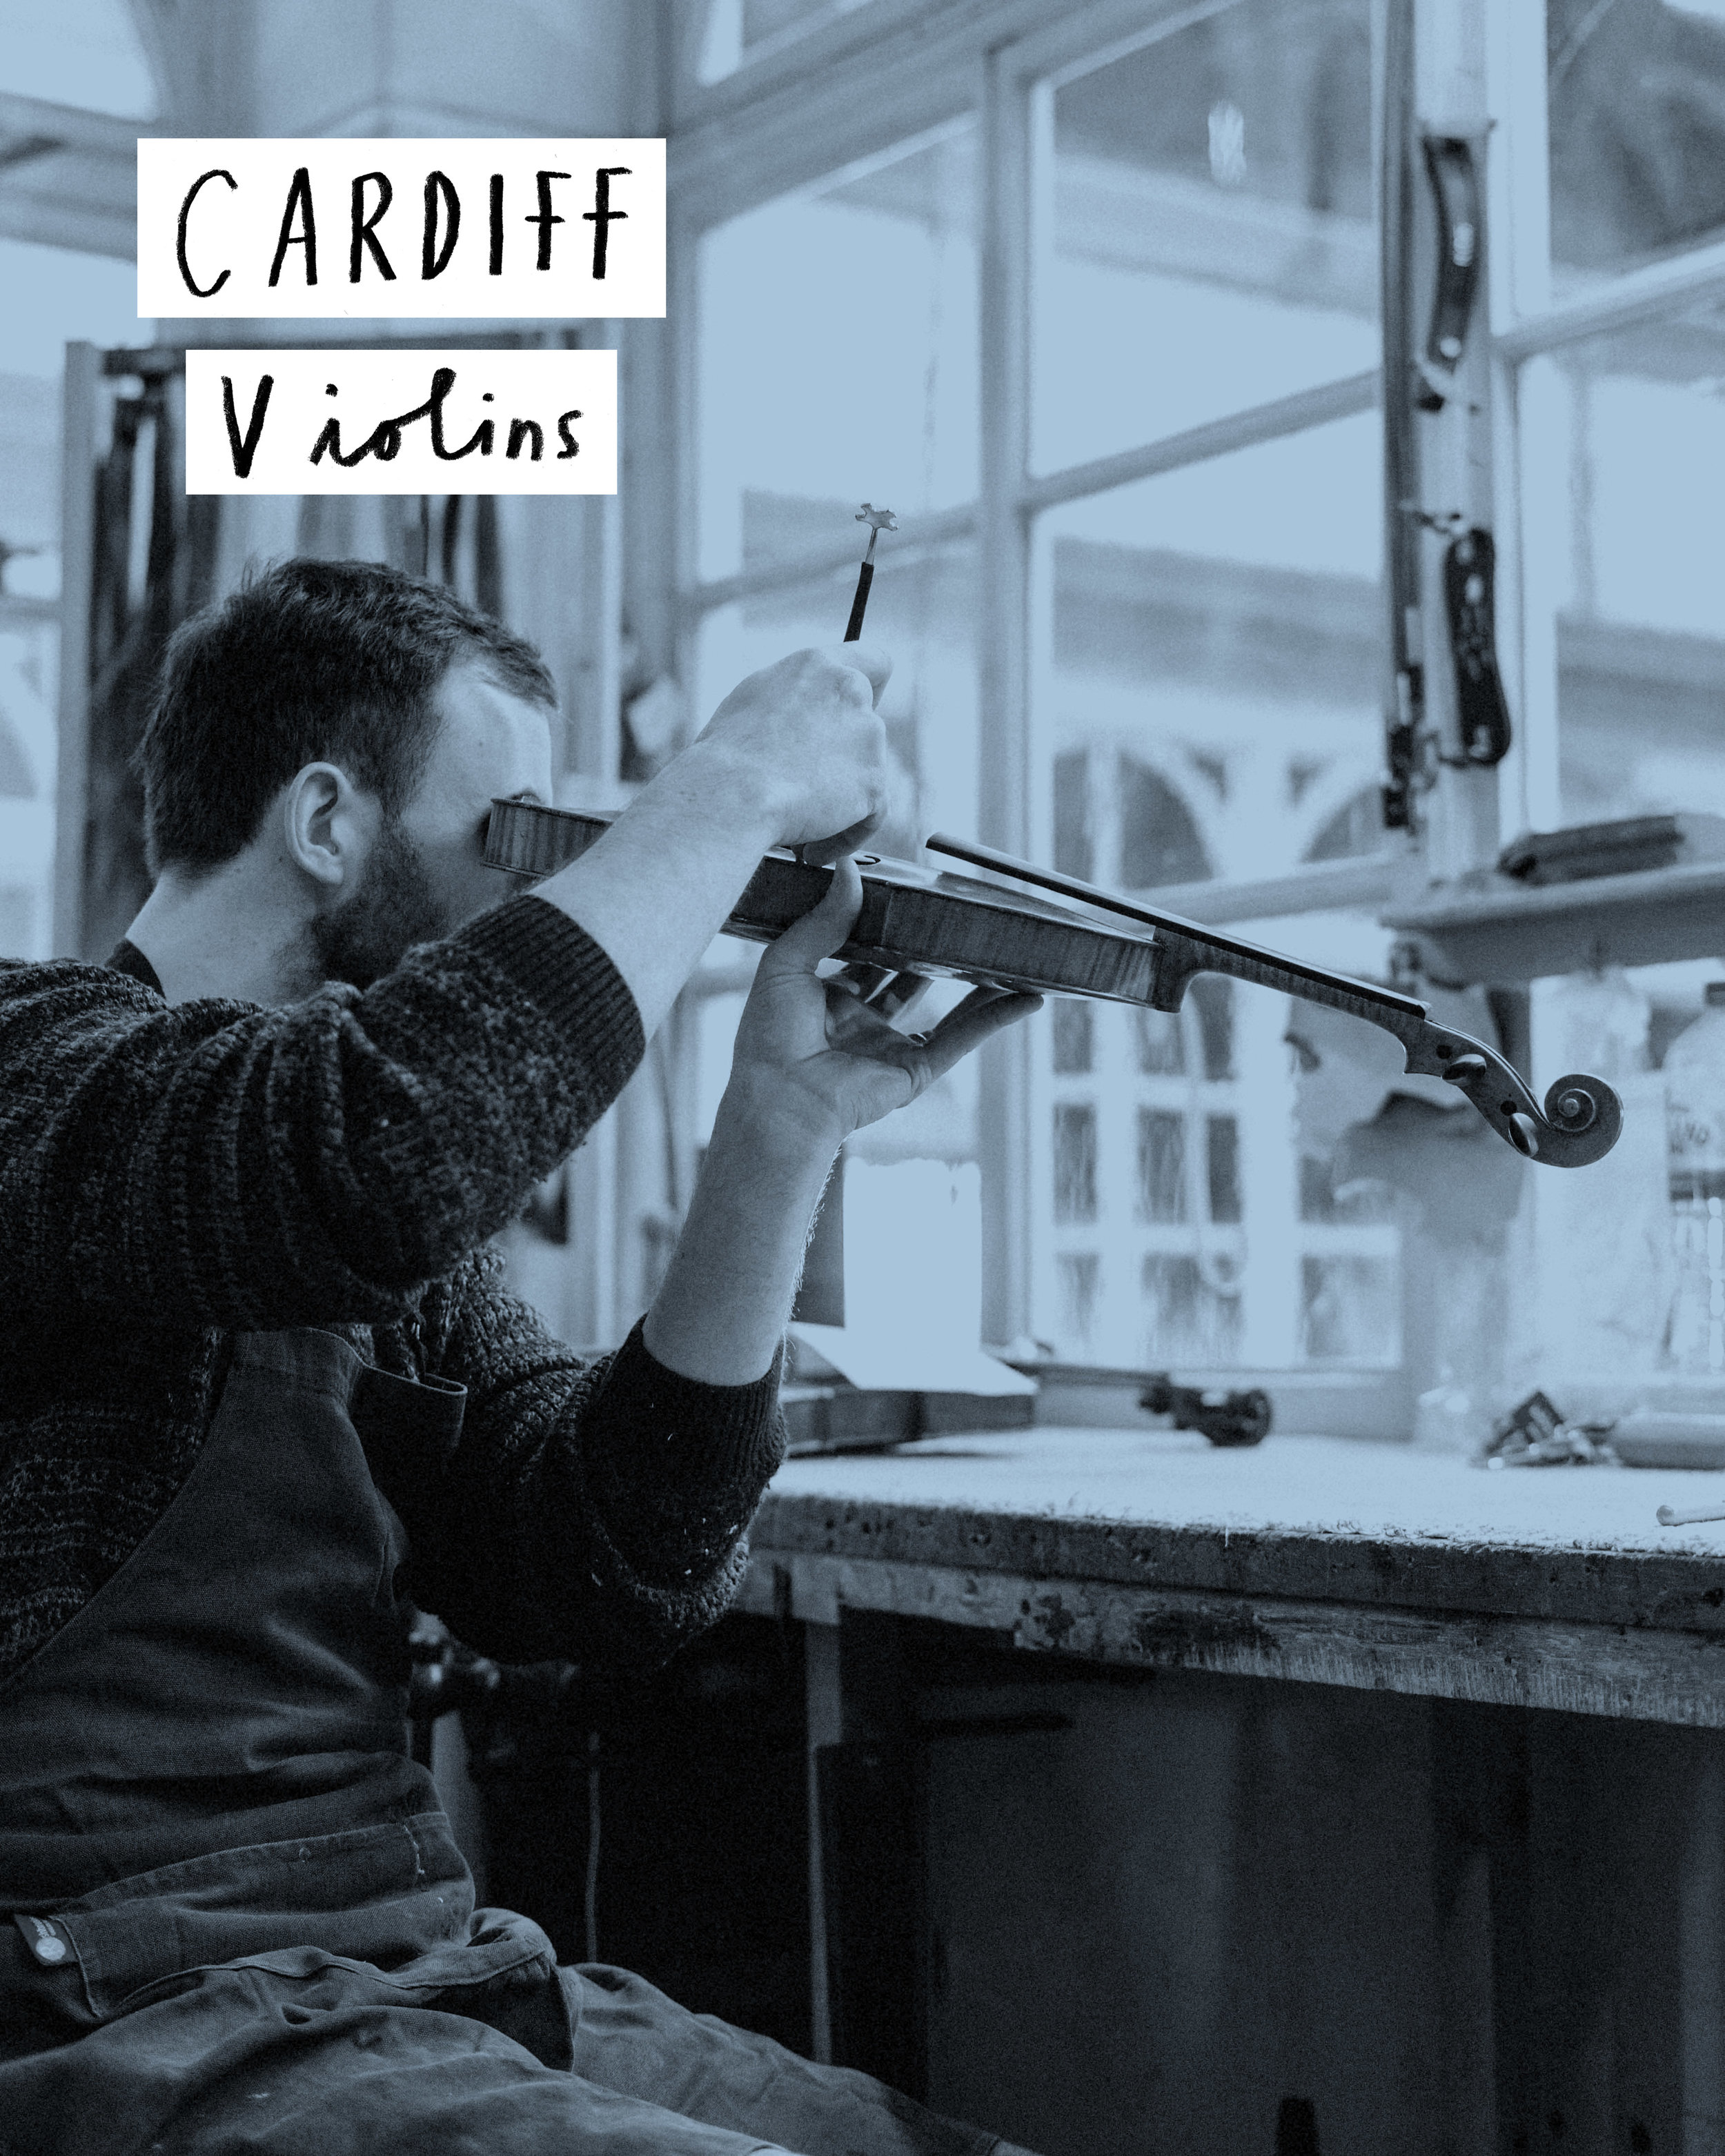 Cardiff Violins Cover Image.jpg